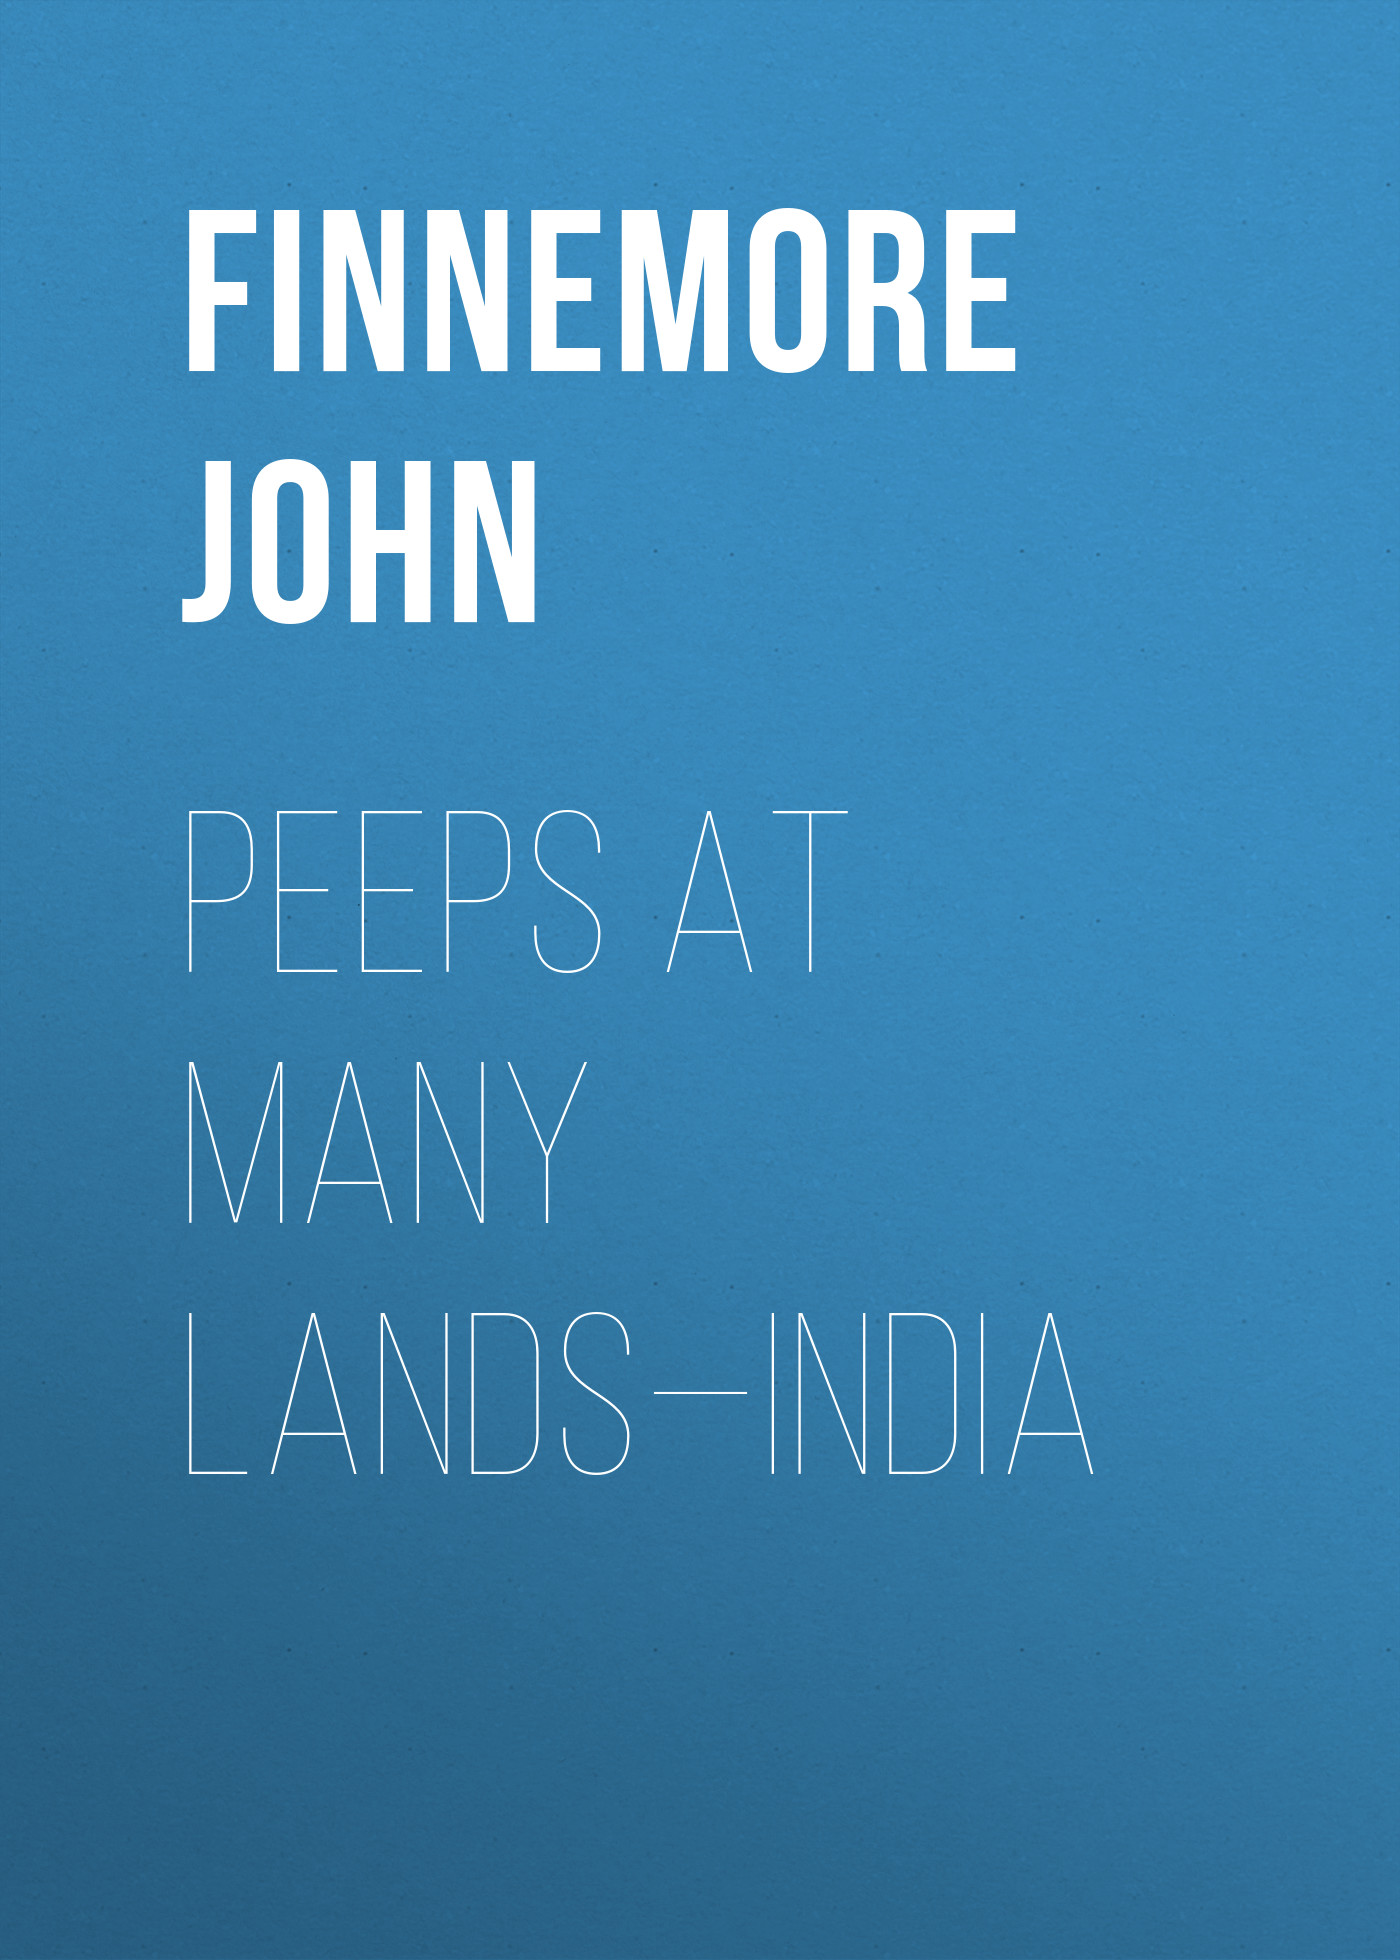 Finnemore John Peeps at Many Lands—India aerosols climatology at mohal in kullu valley himachal pradesh india